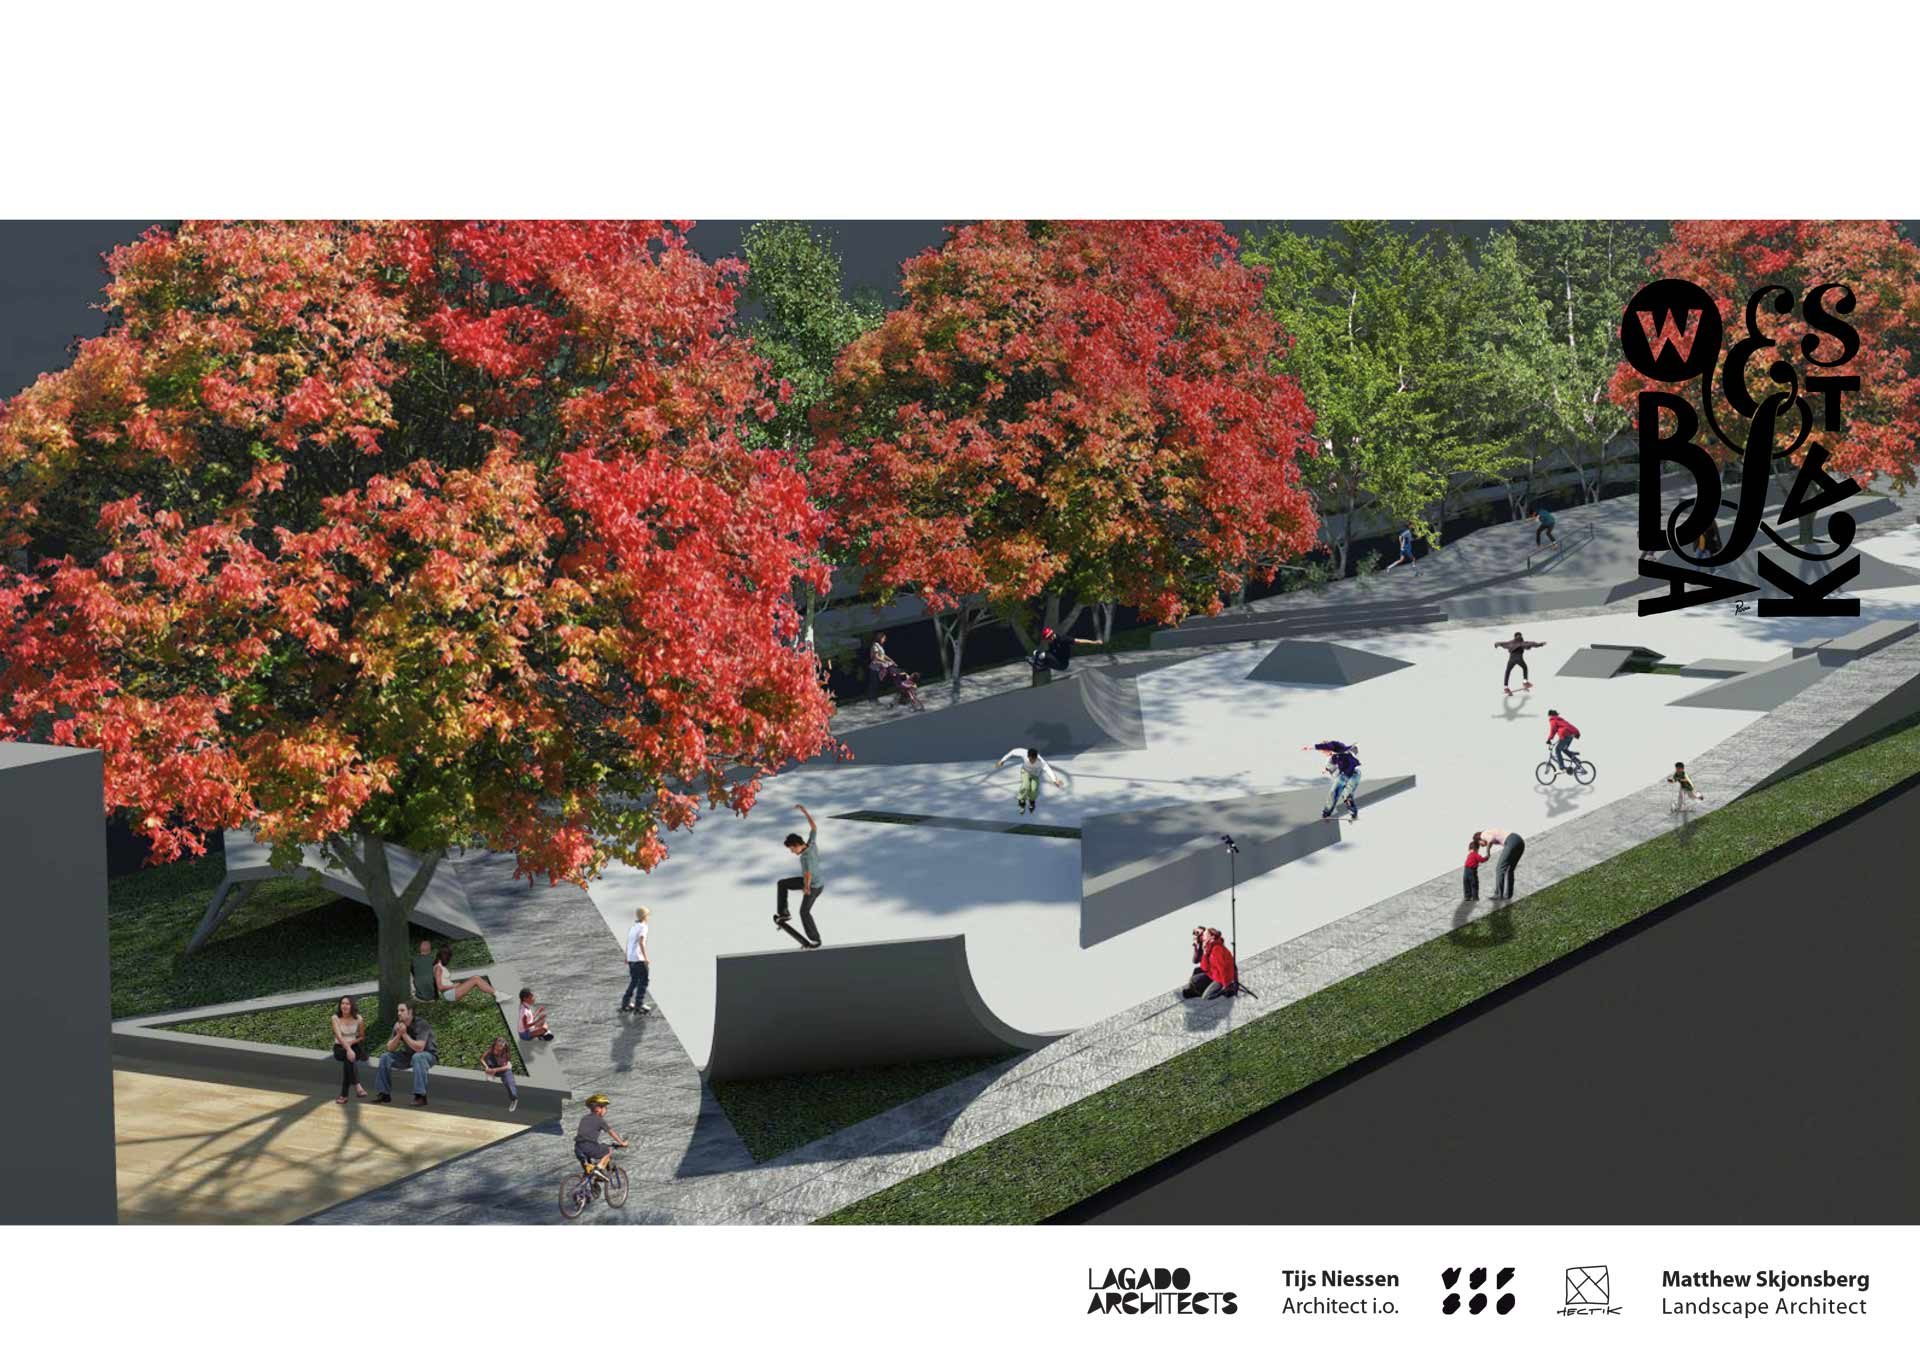 Westblaak-Rotterdam-skatepark-LAGADO-architects-public-space-urban-youth-play-proposal1